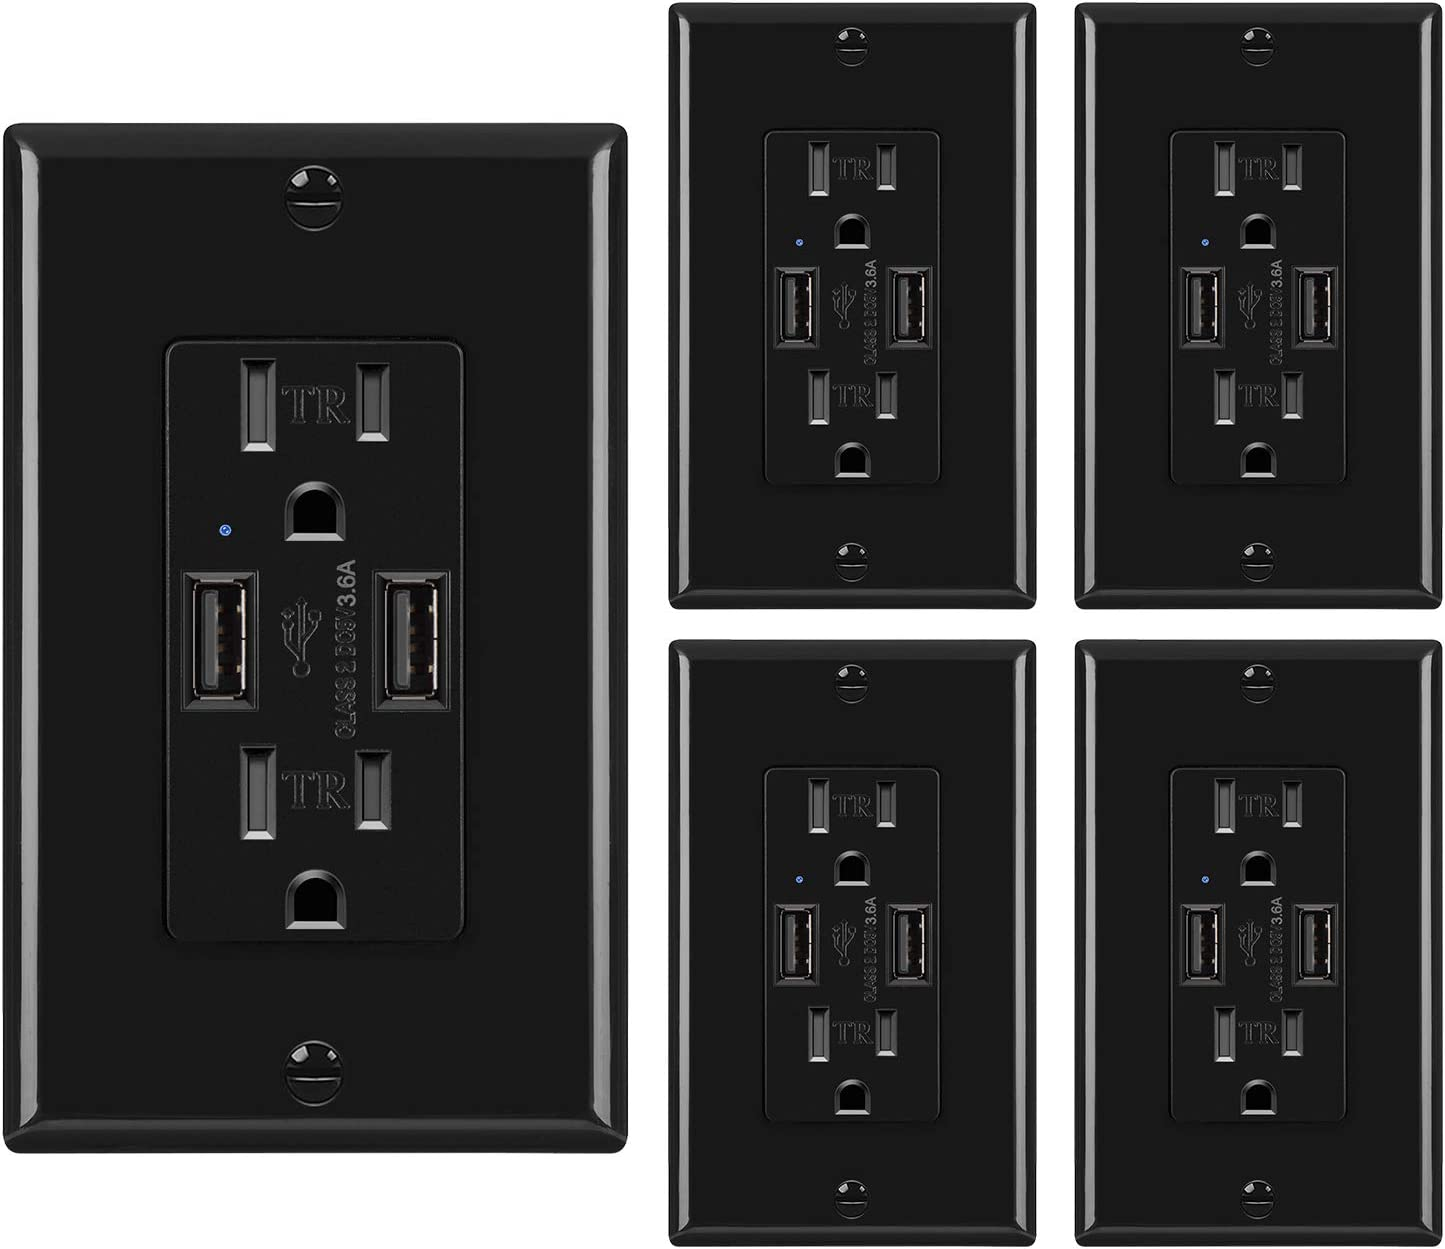 [5 Pack] BESTTEN 3.6A USB Wall Receptacle with 15A Tamper Resistant Outlets, Dual USB Charging Ports for Smartphone, Tablet and Other USB Device, UL Listed, Black